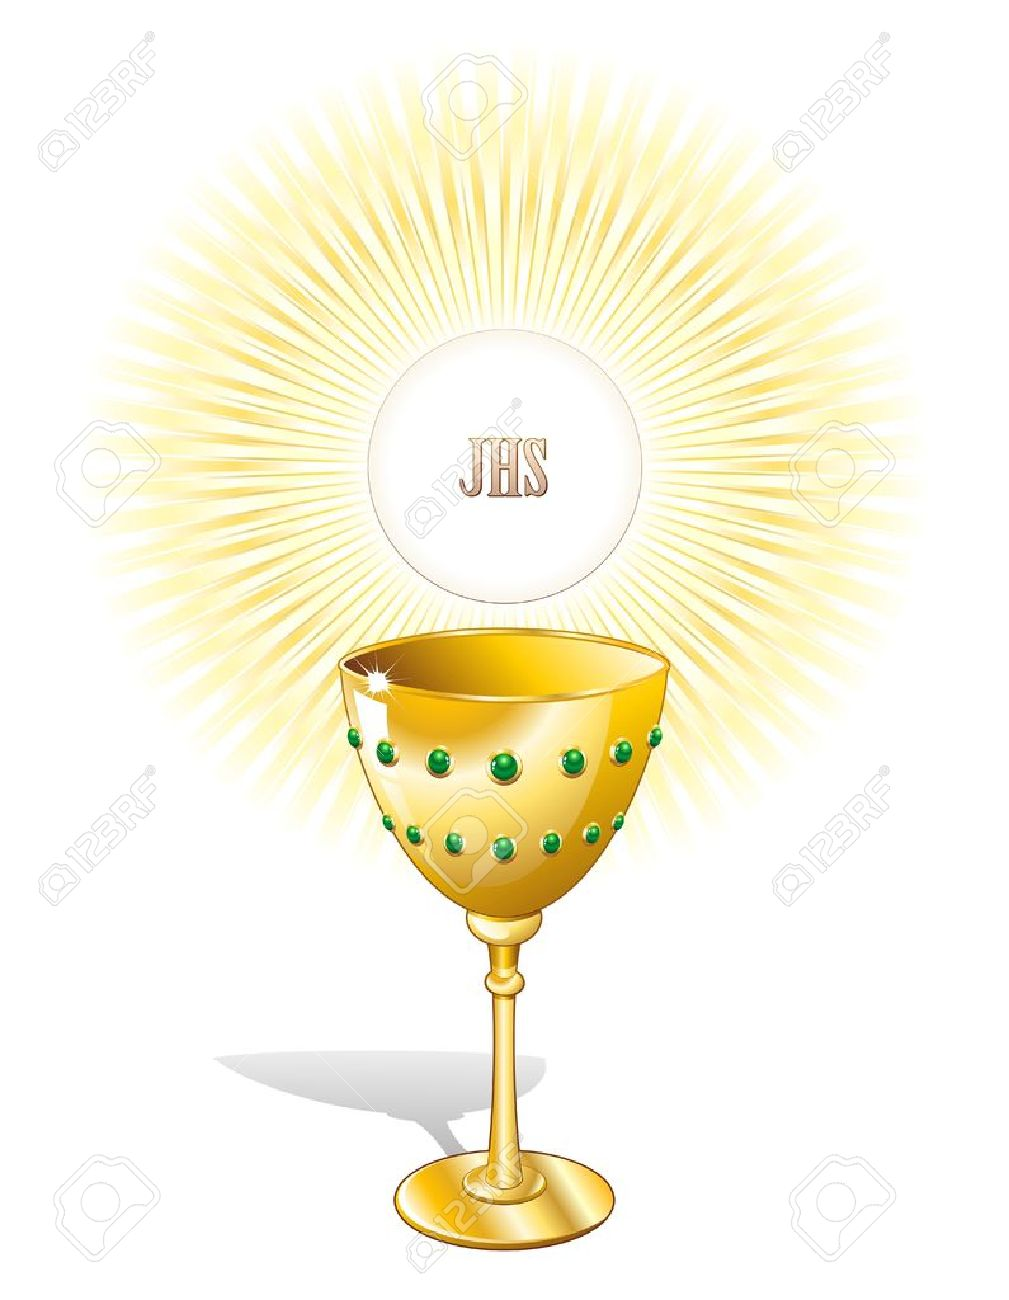 Religion Chalice Cup and Host - 10534750